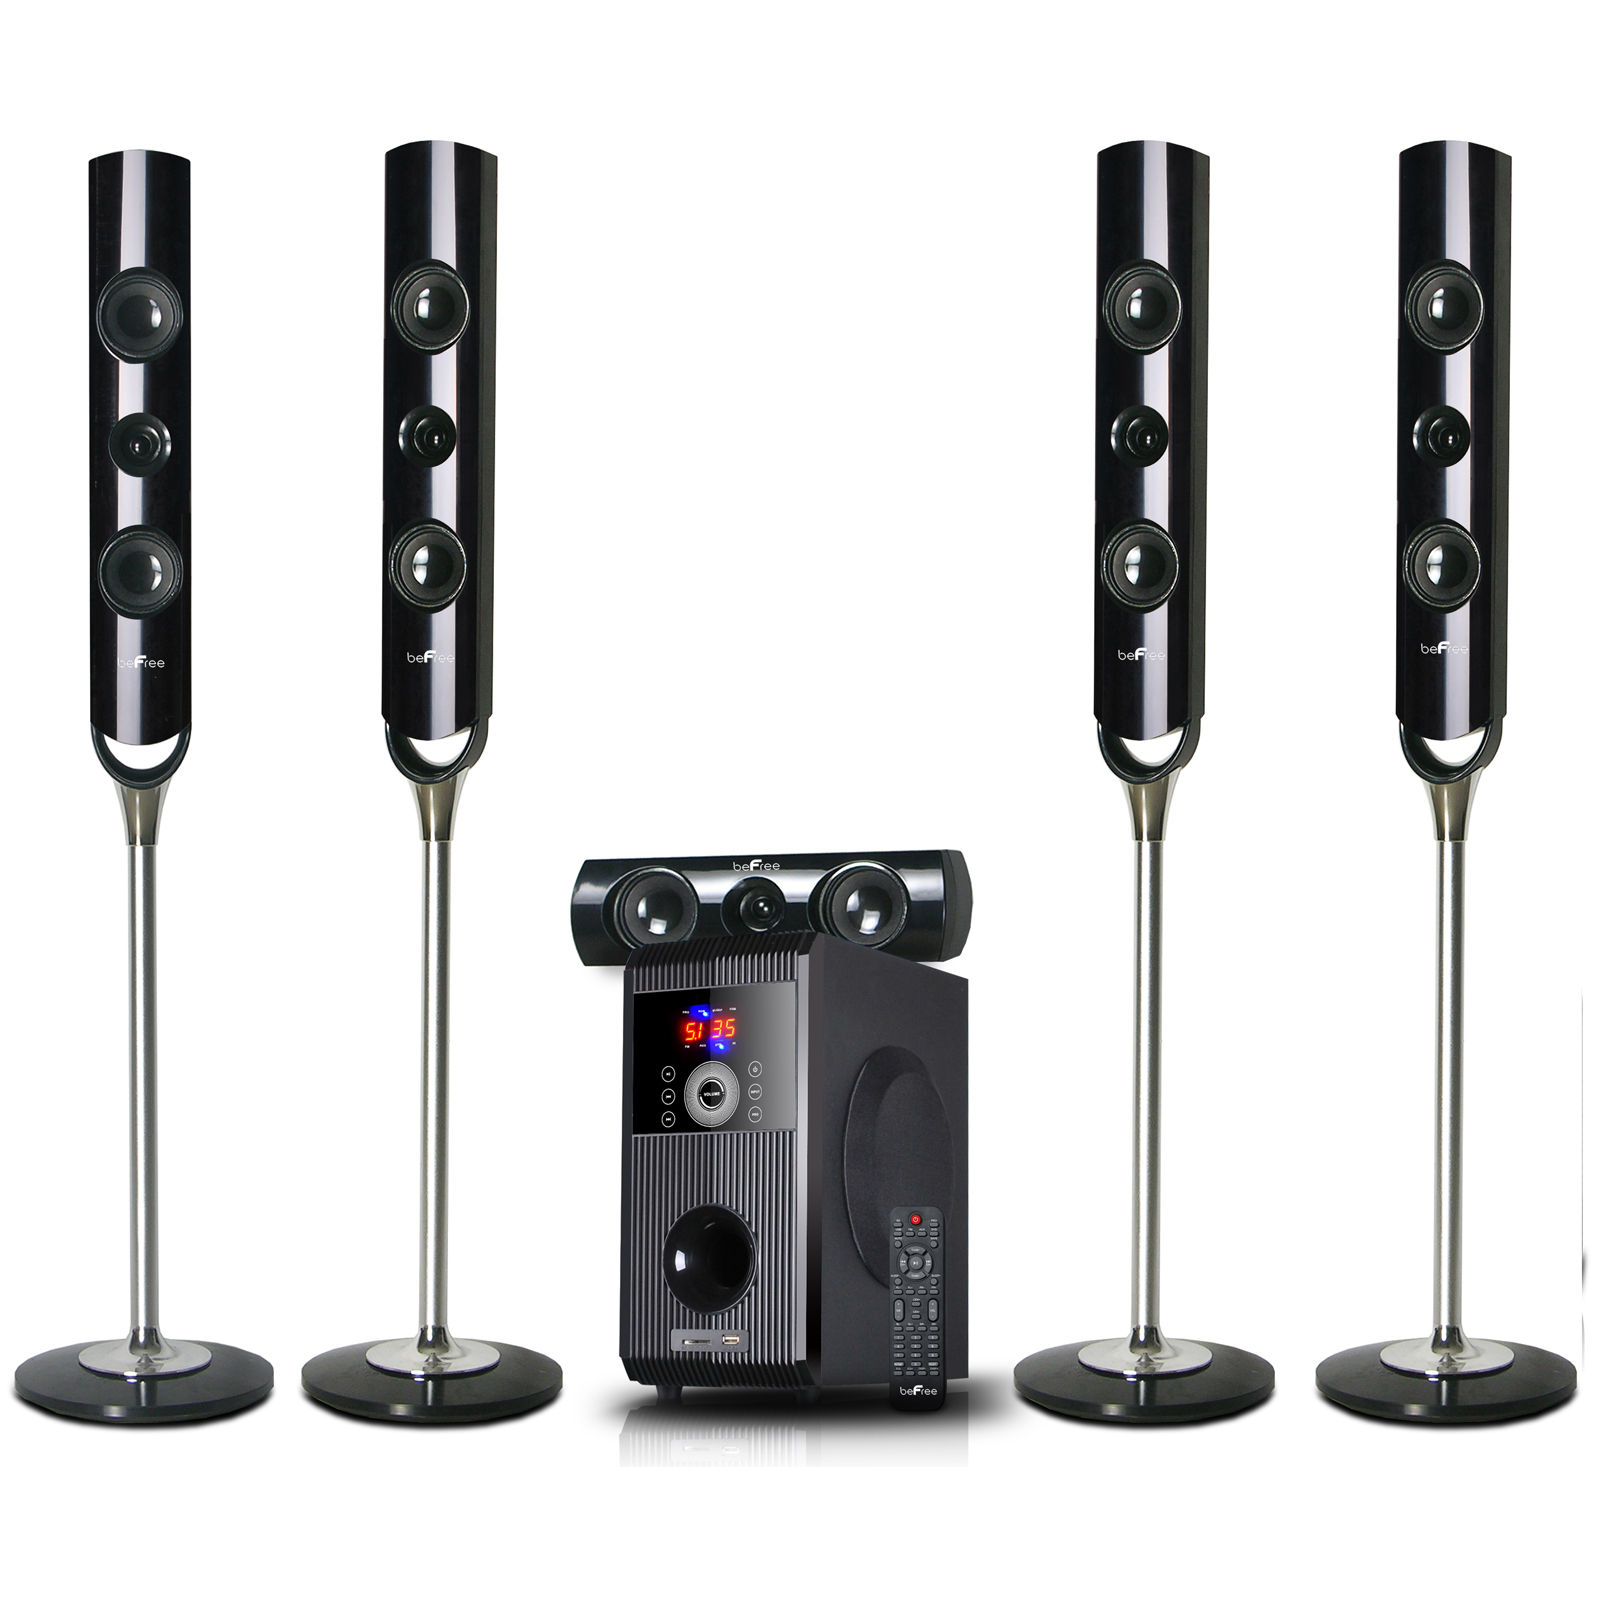 beFree Sound 91592800M 5.1-Channel Bluetooth Speaker System Black